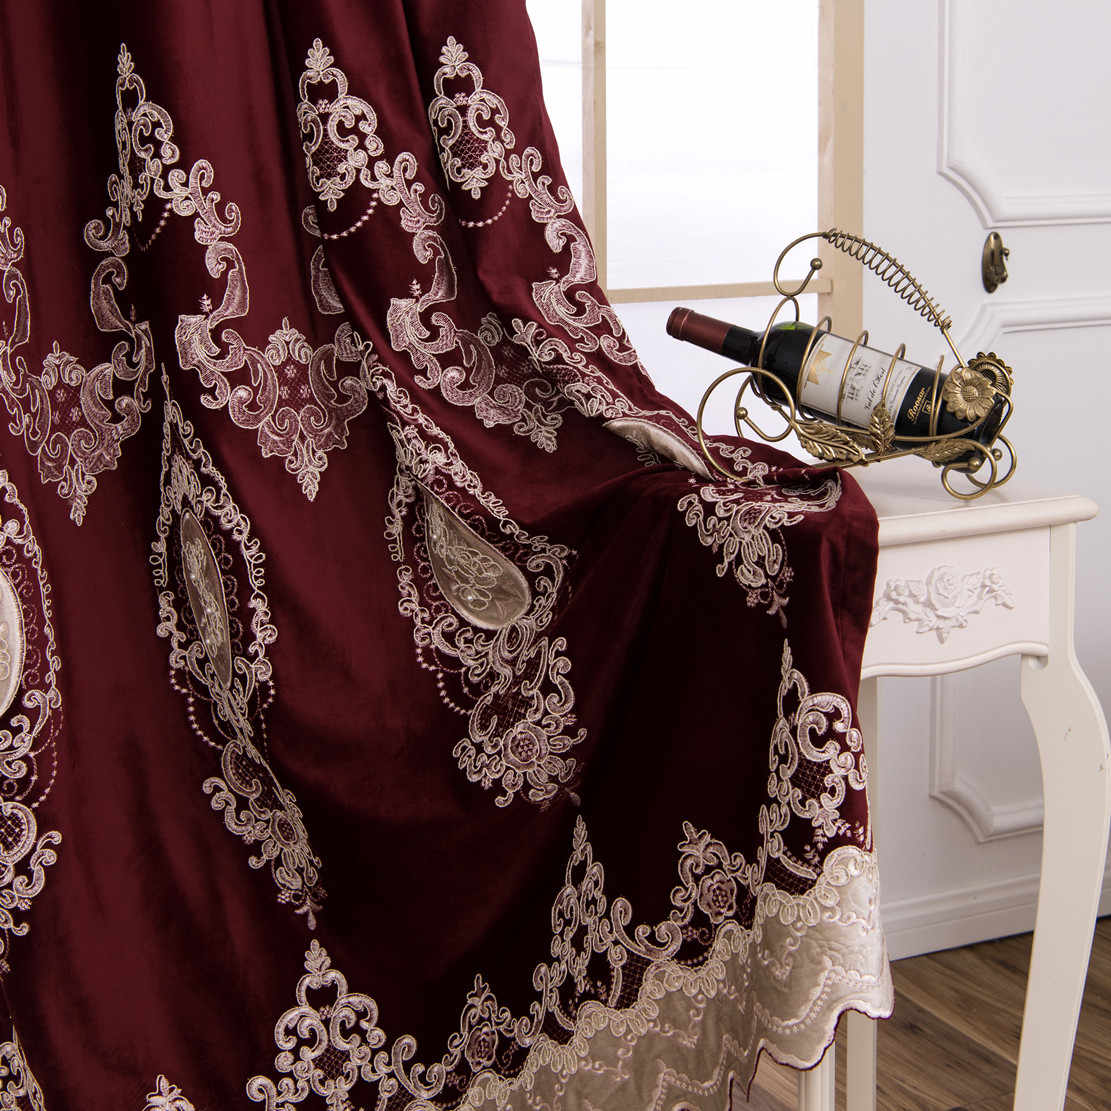 European Luxury Embroidery Curtains Burgundy Velvet Cloth Curtains with  Beads Blackout Curtain for Bedroom and Living Room